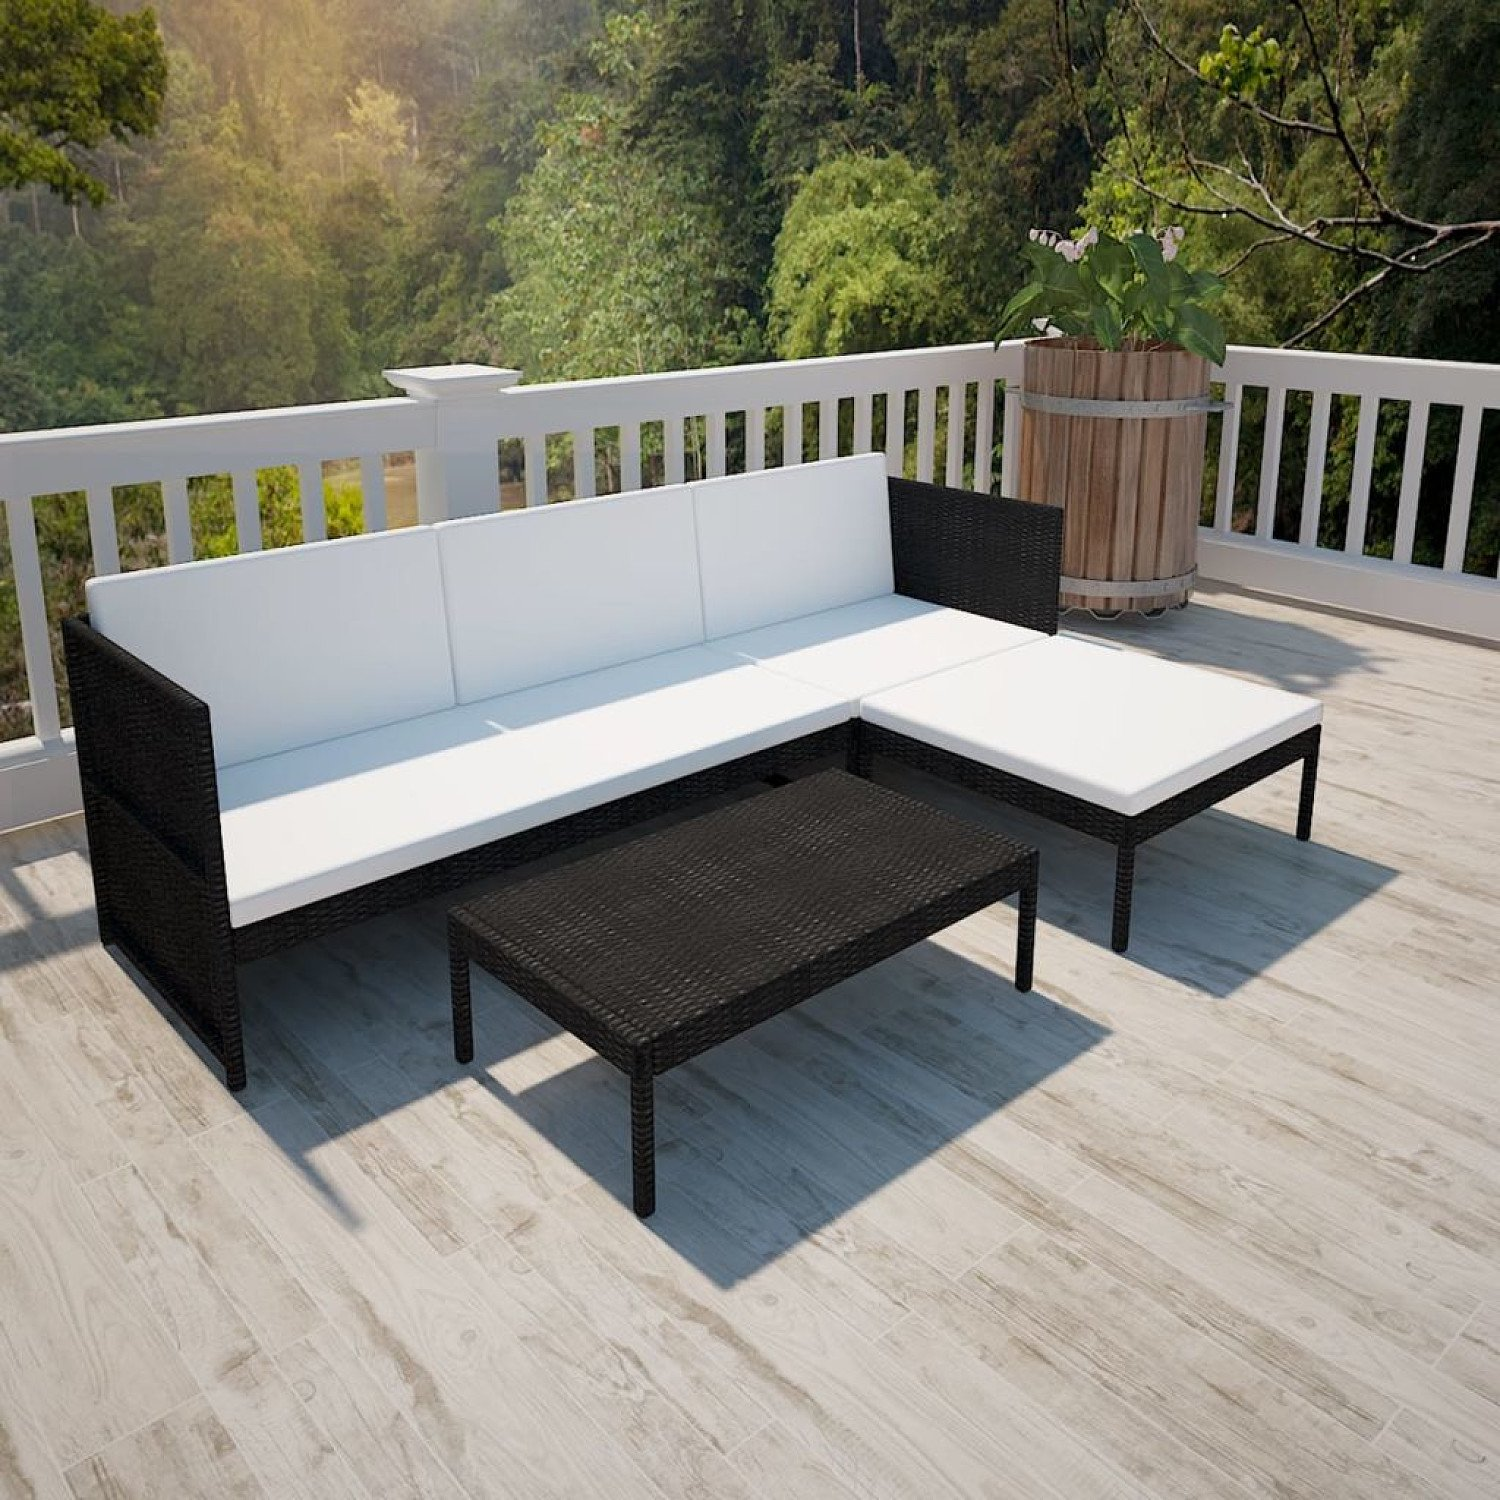 Lovely Rattan Lounge Set white with black cushions - free delivery